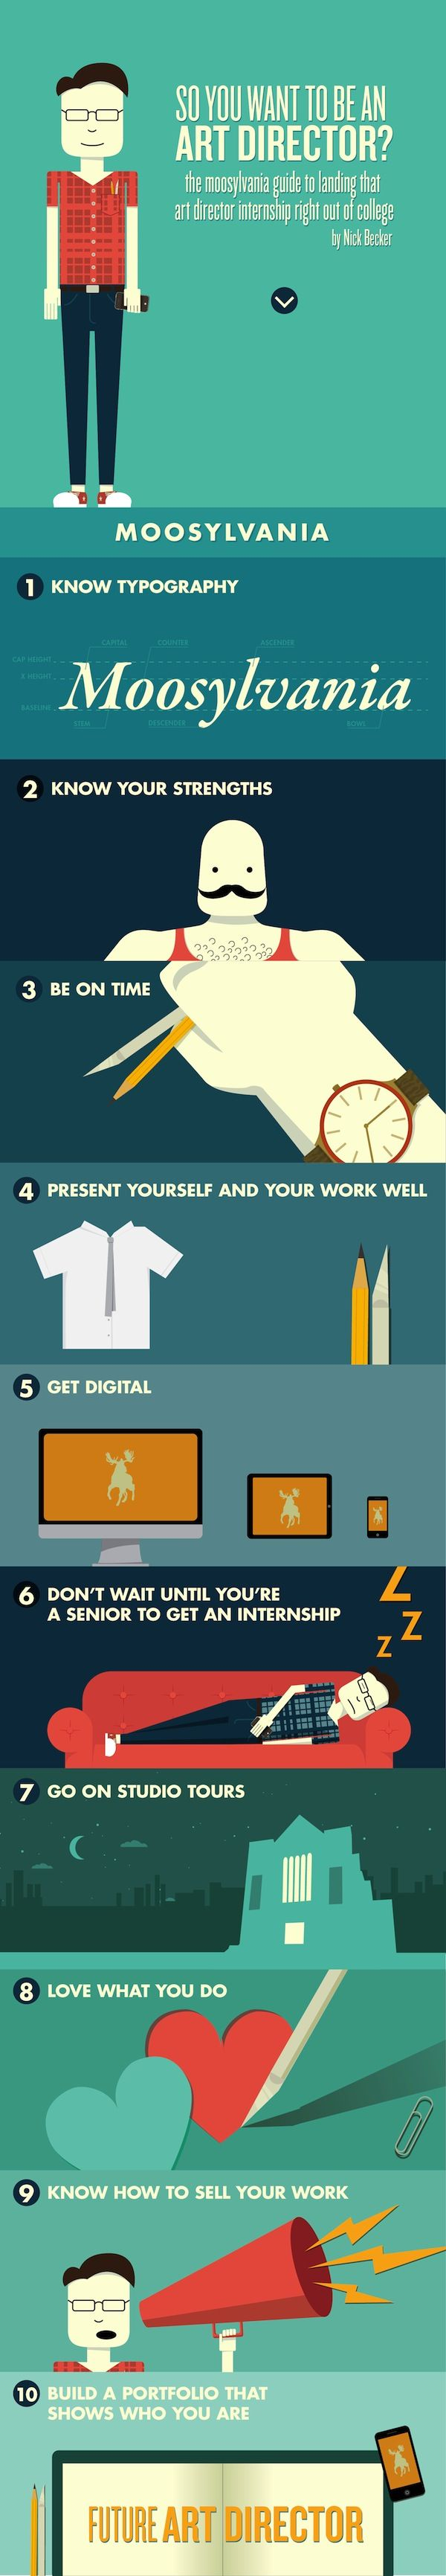 So you want to be an art director? #infographic